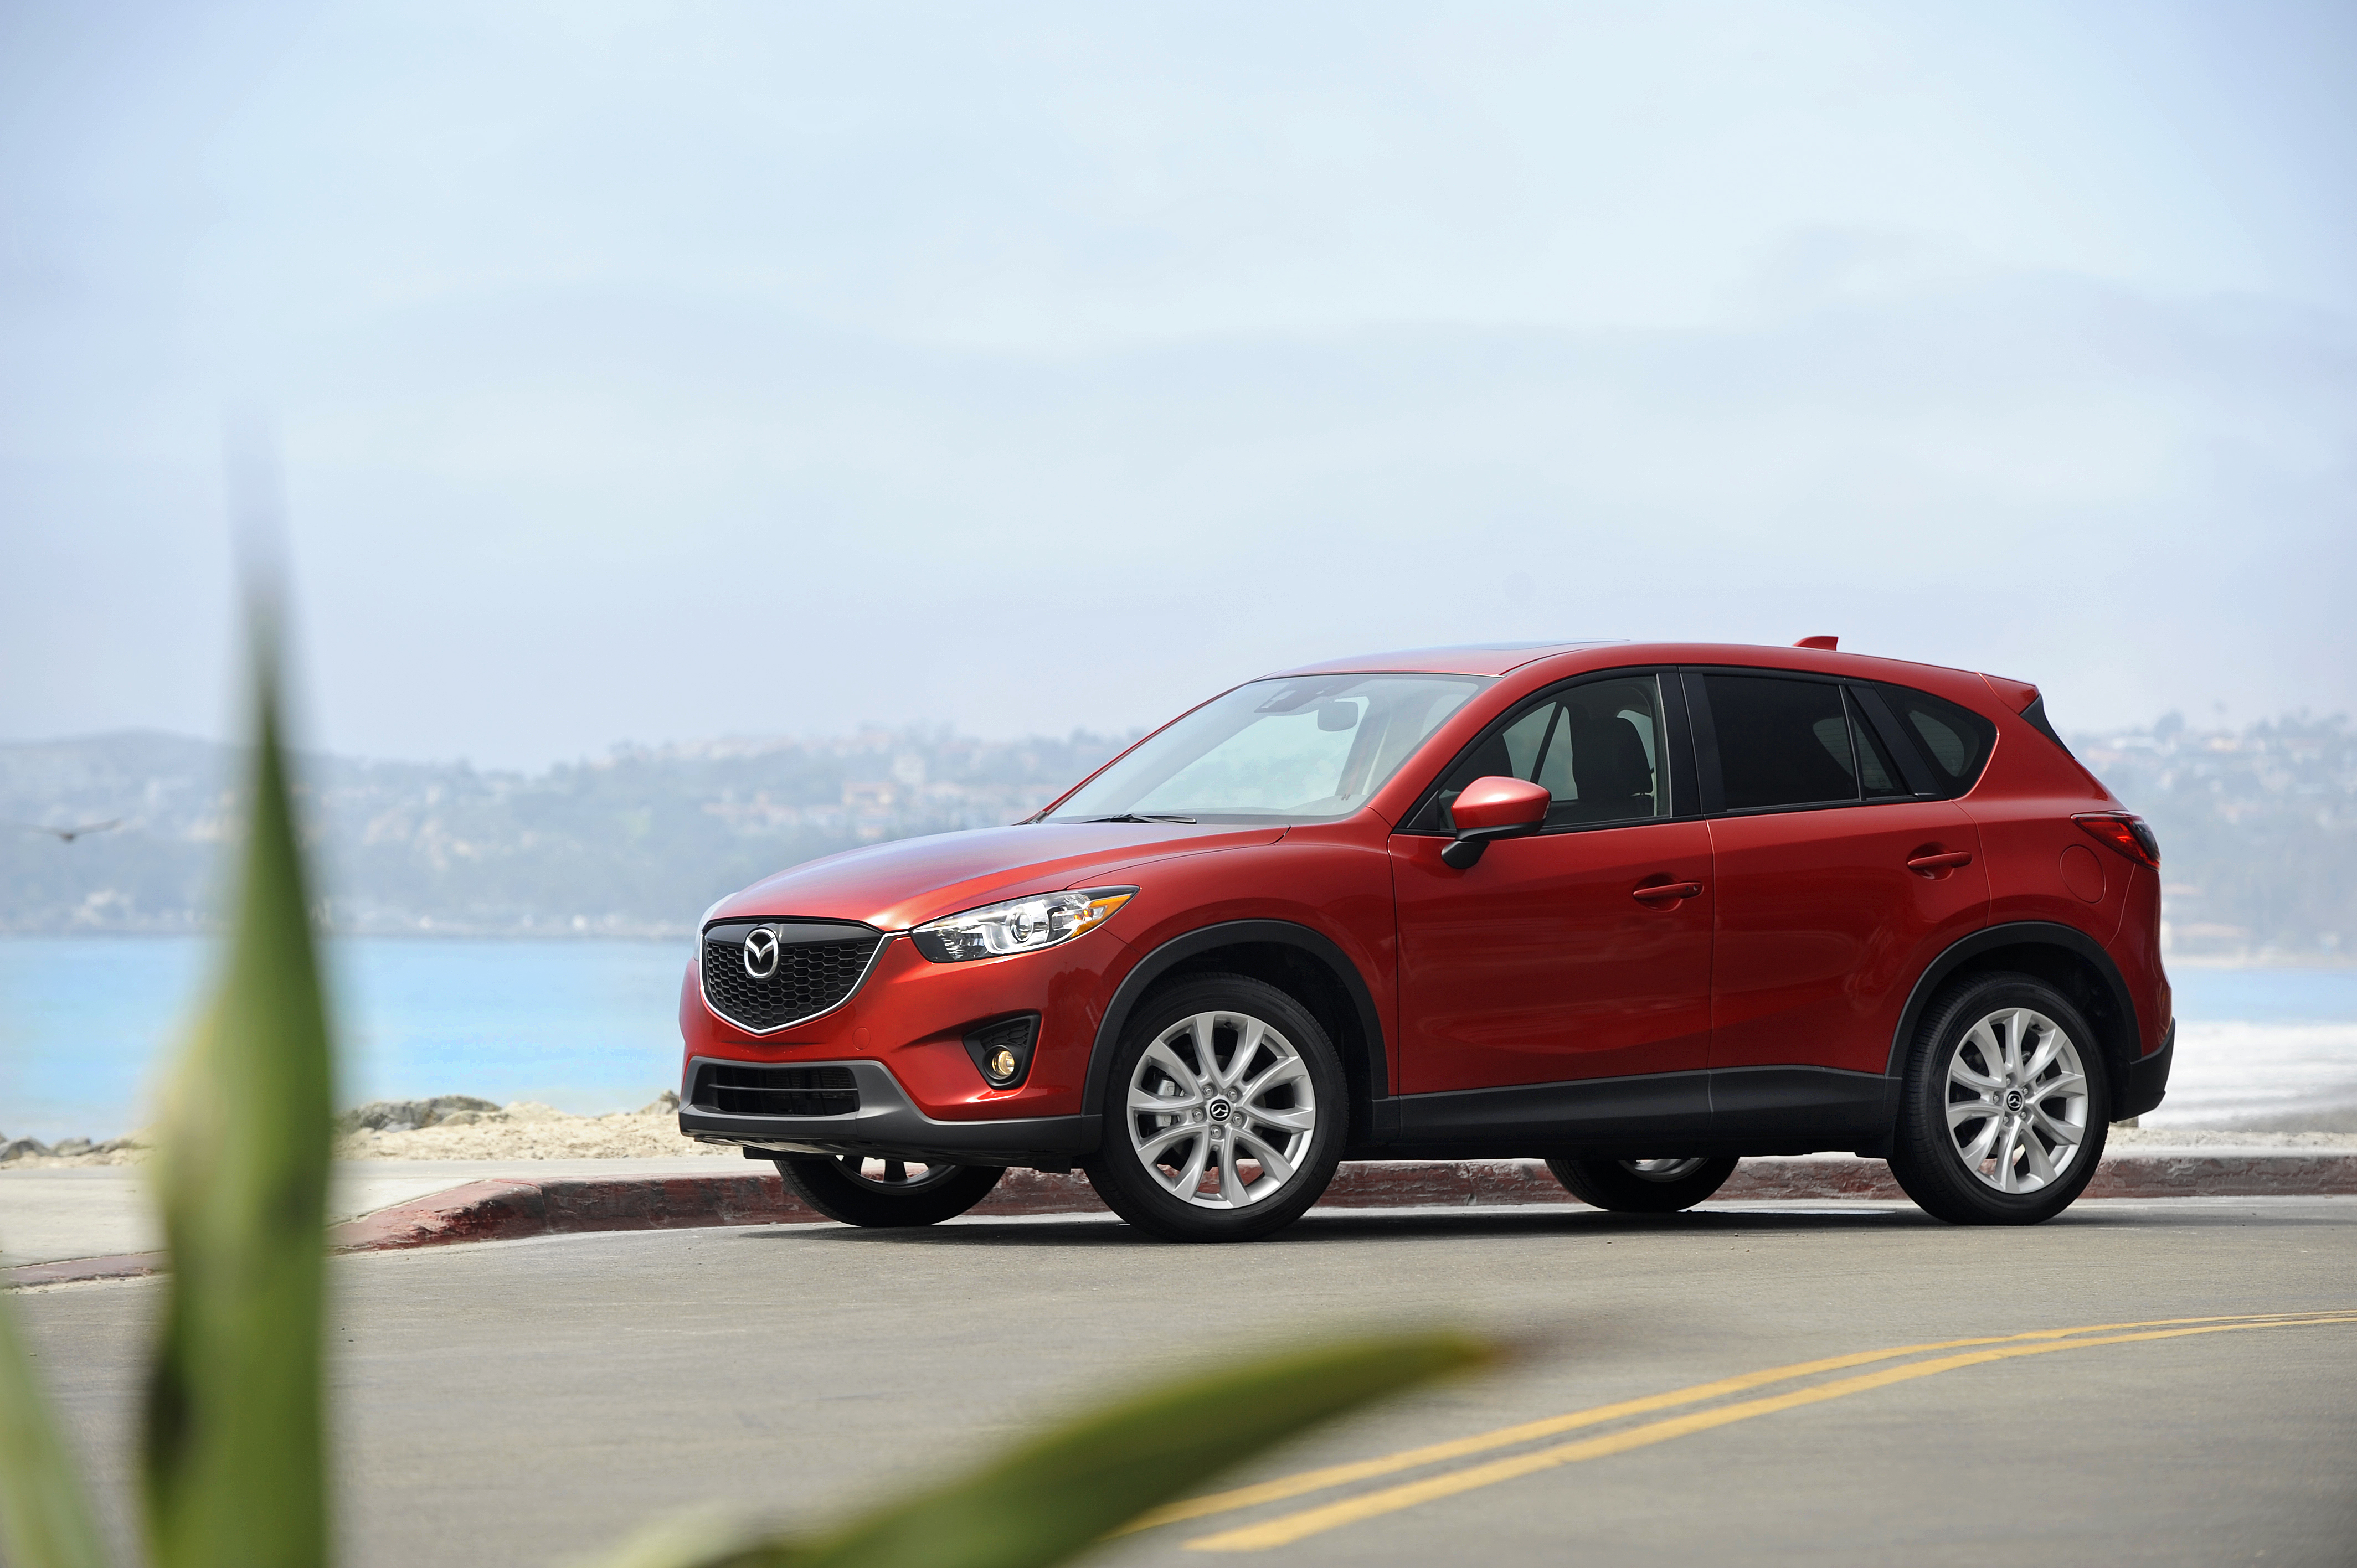 Mazda CX-5 Replacement Windshields Recalled